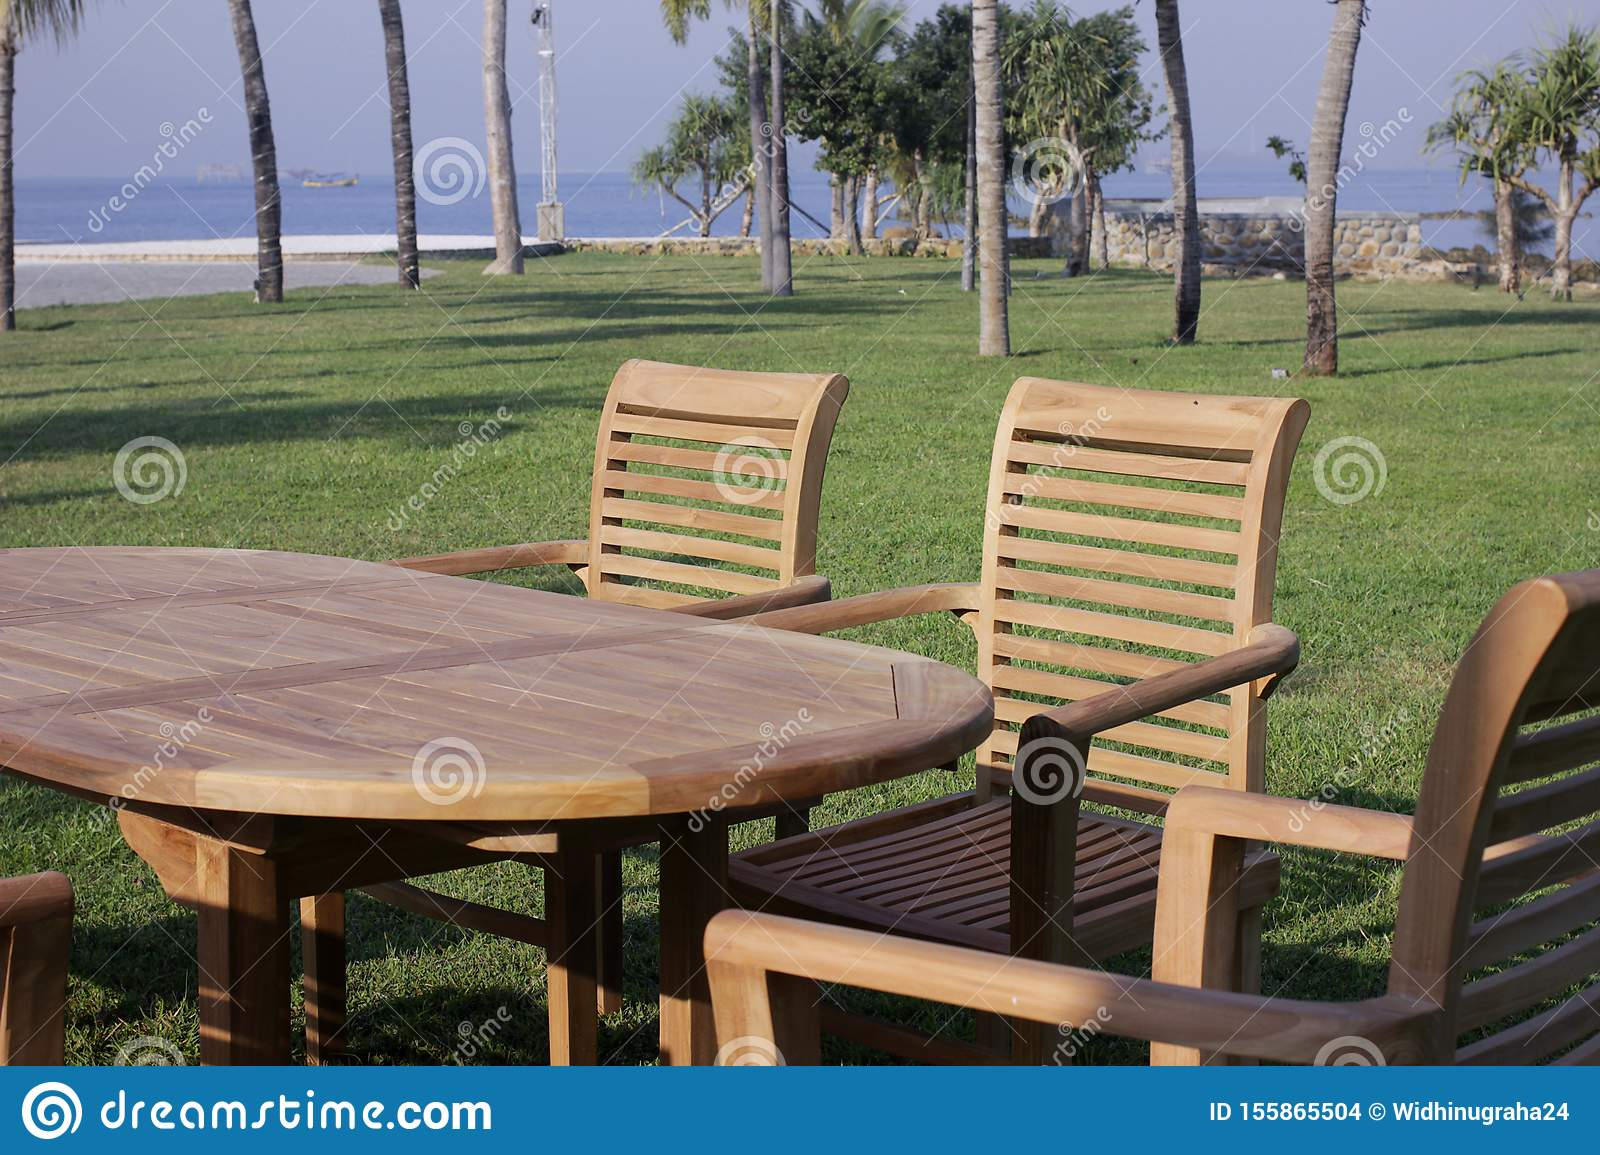 Picture of: Garden Furniture Outdoor Teak Dining Table Chairs Stock Photo Image Of Furnitureminimalis Wood 155865504